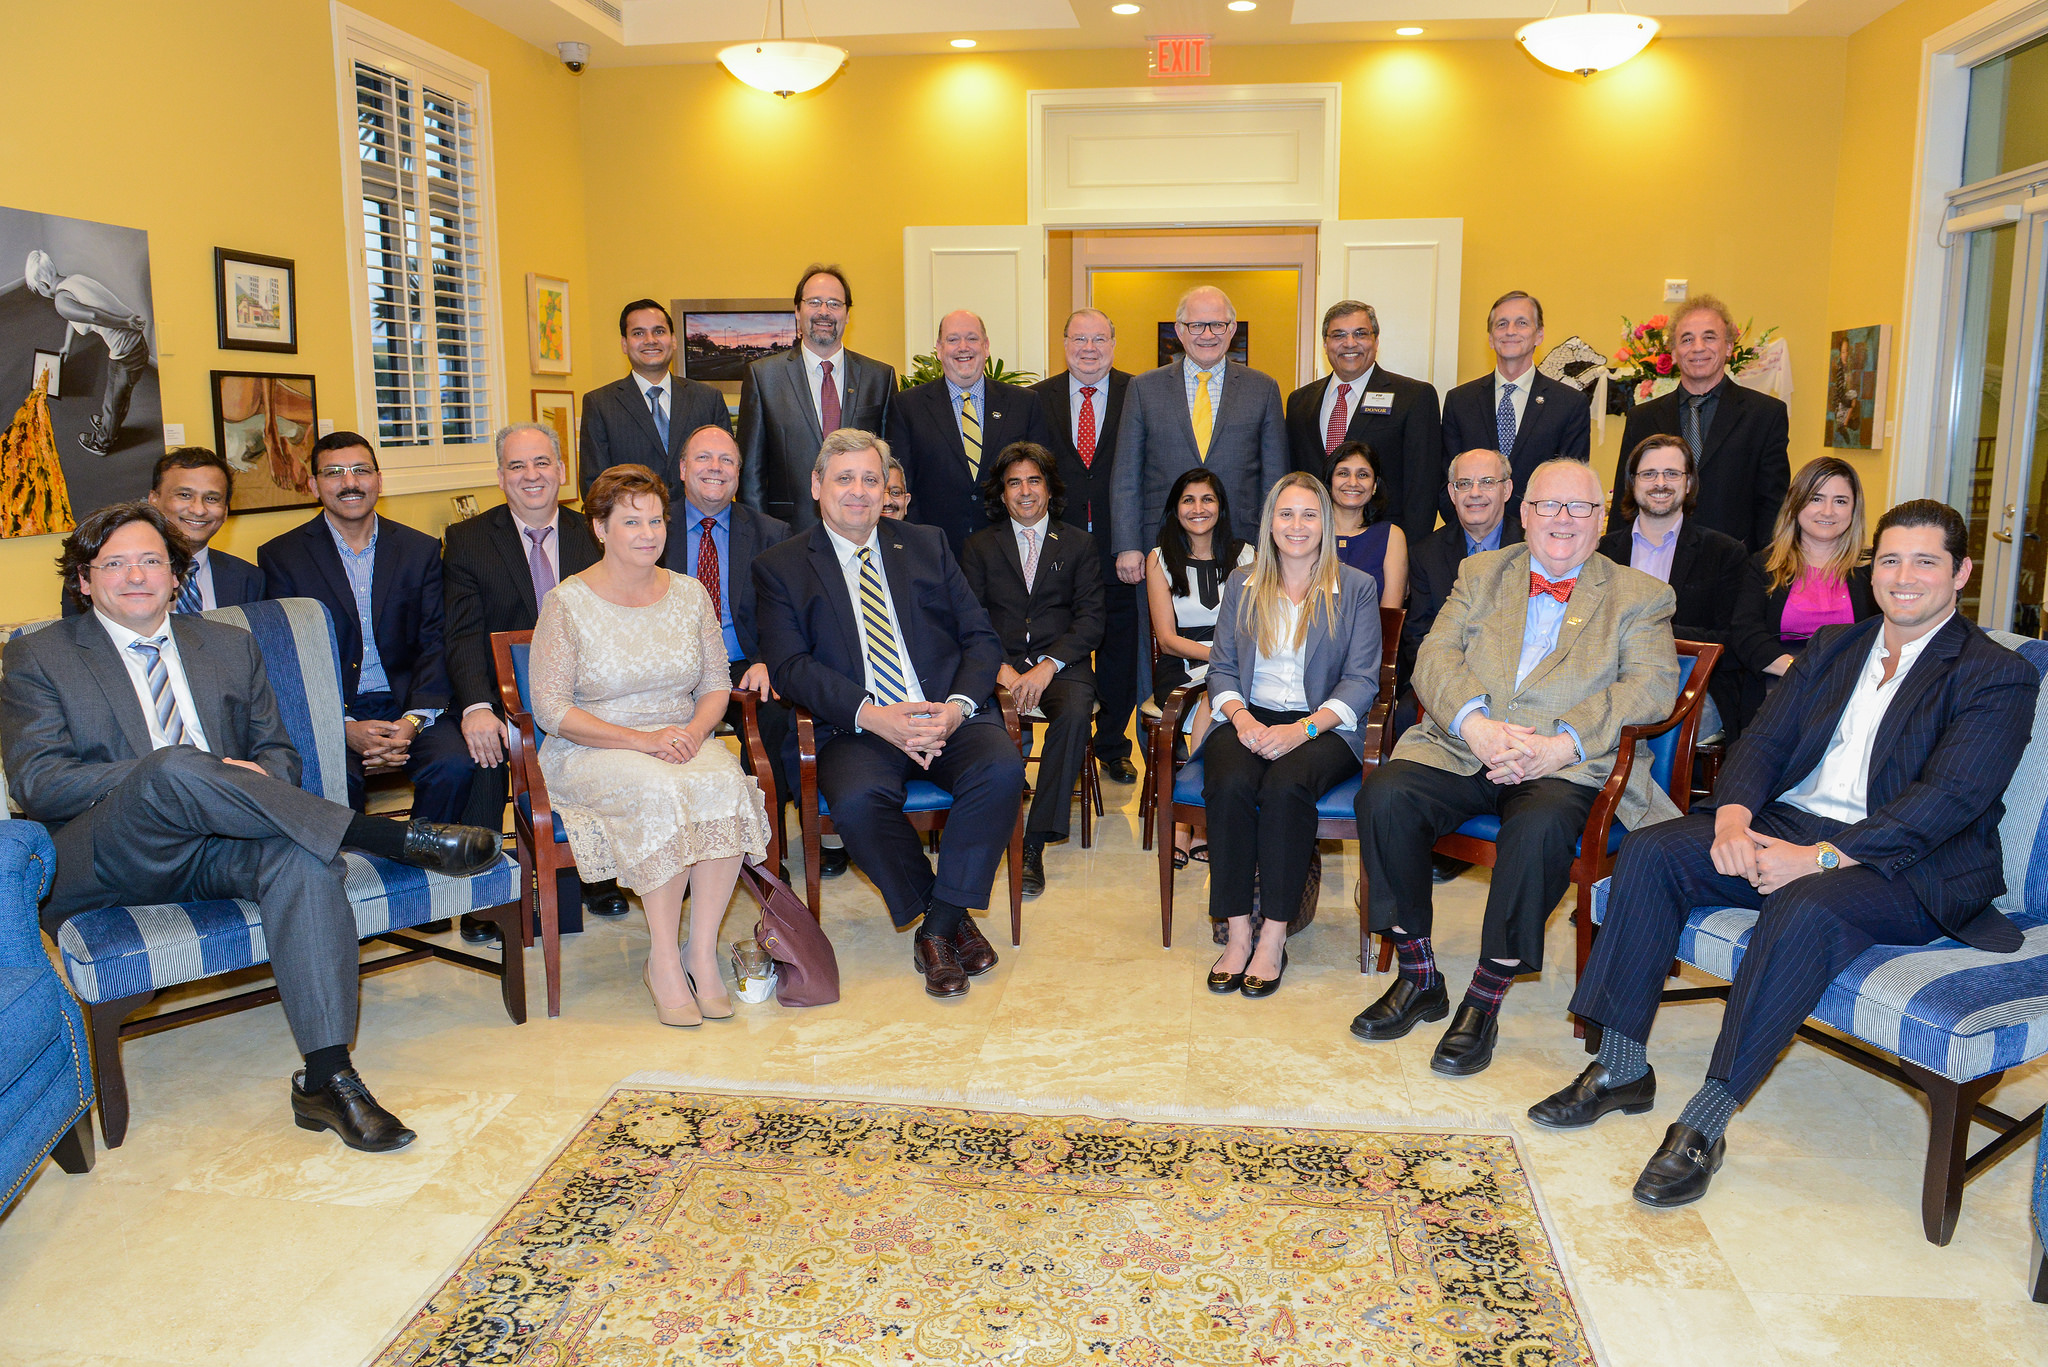 FIU News: Donors, faculty strengthen partnerships at inaugural Endowed Faculty Reception